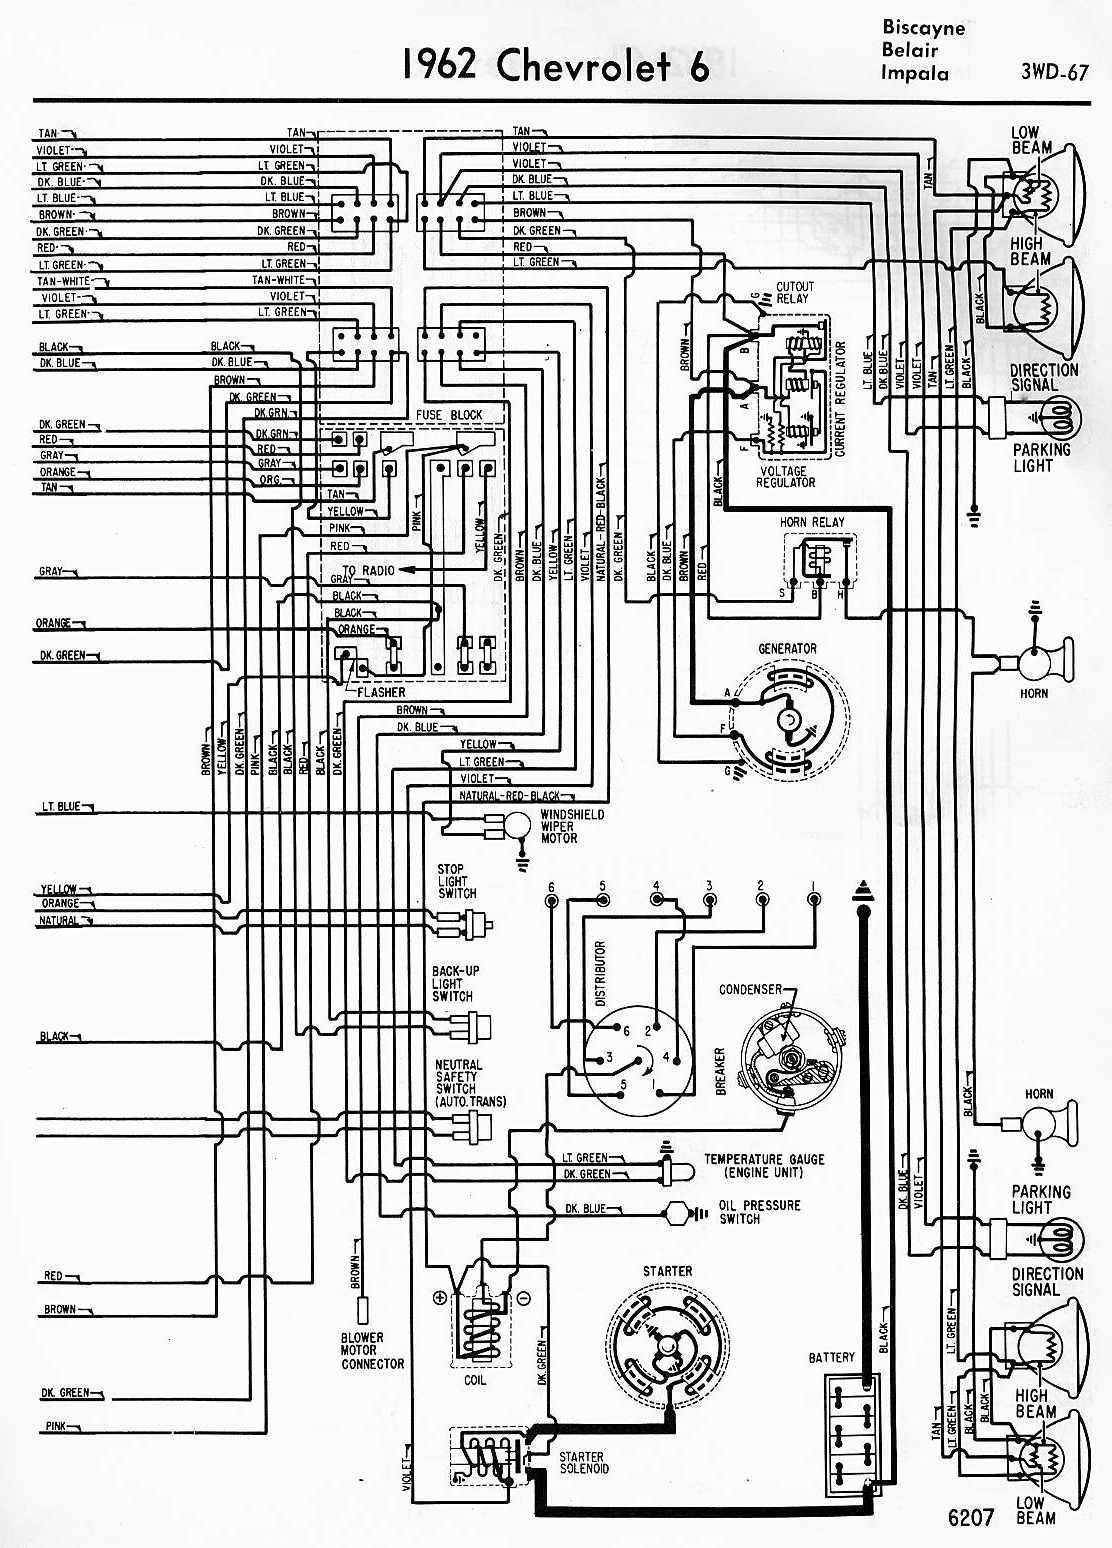 ez wiring diagram 1966 gto 20 artatec automobile de u2022ez wiring diagram 1966 gto best [ 1112 x 1548 Pixel ]